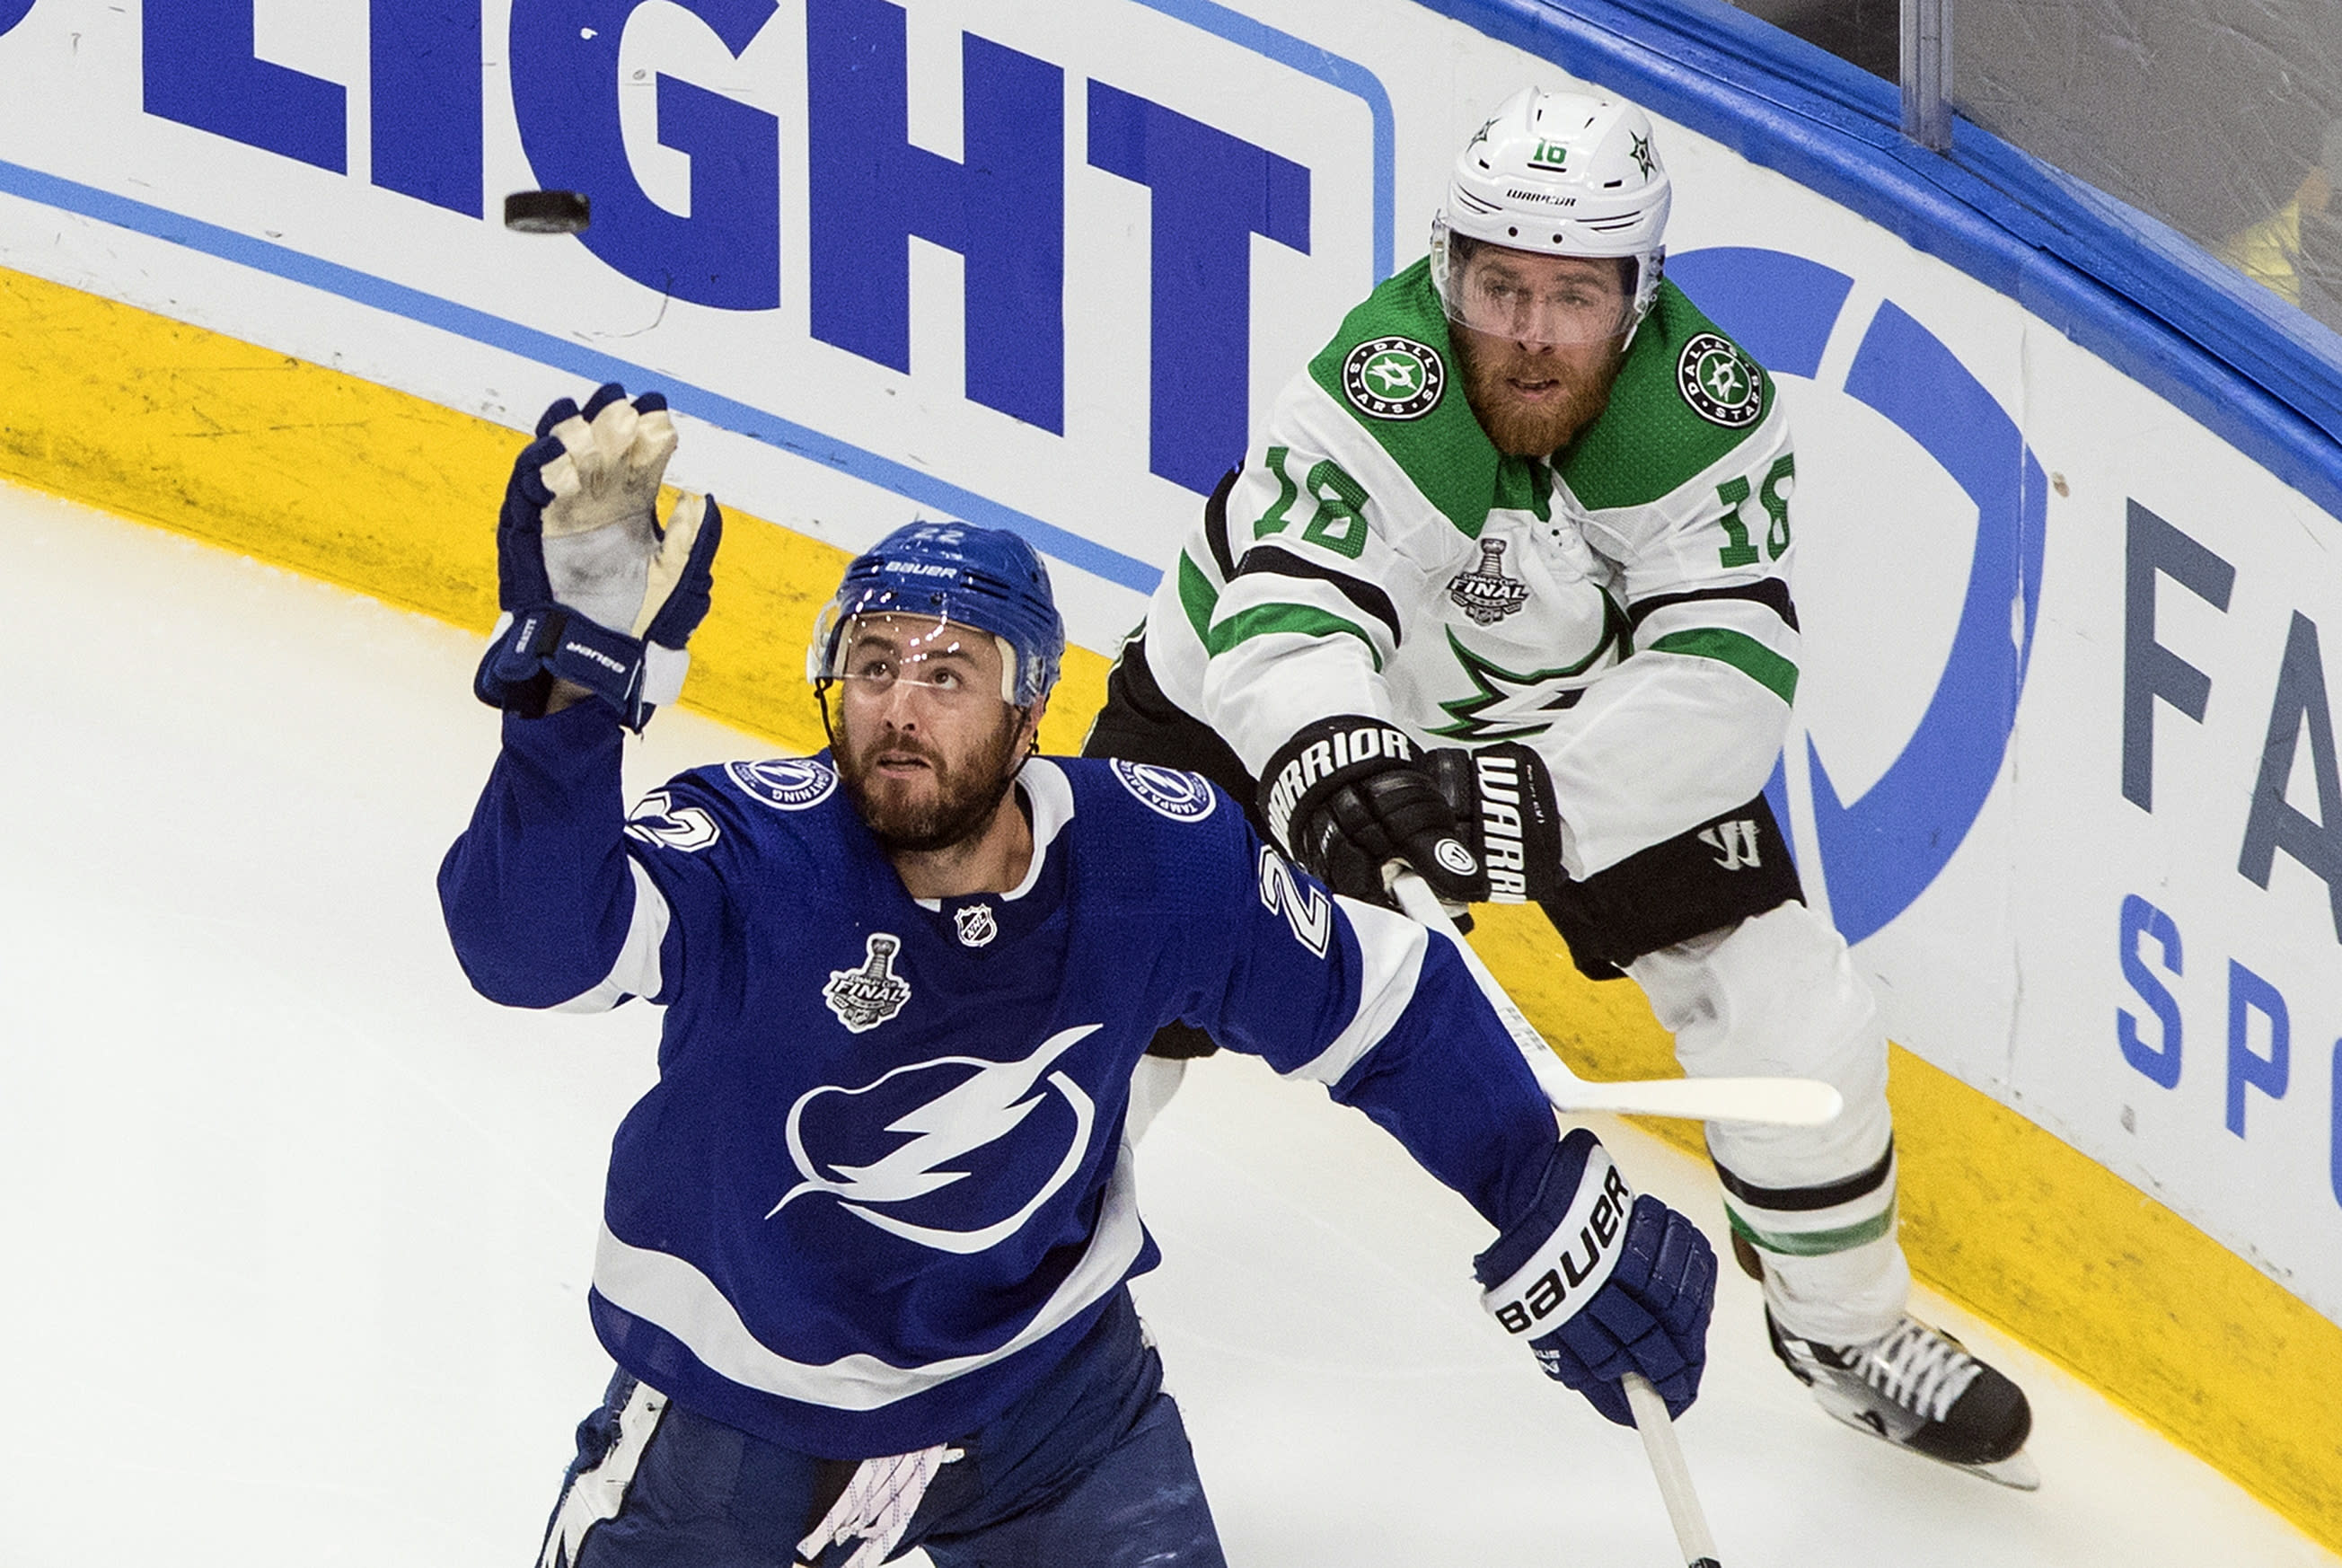 Dallas Stars' Joe Pavelski (16) and Tampa Bay Lightning's Kevin Shattenkirk (22) battle for the puck during third-period NHL Stanley Cup finals hockey action in Edmonton, Alberta, Monday, Sept. 21, 2020. (Jason Franson/The Canadian Press via AP)